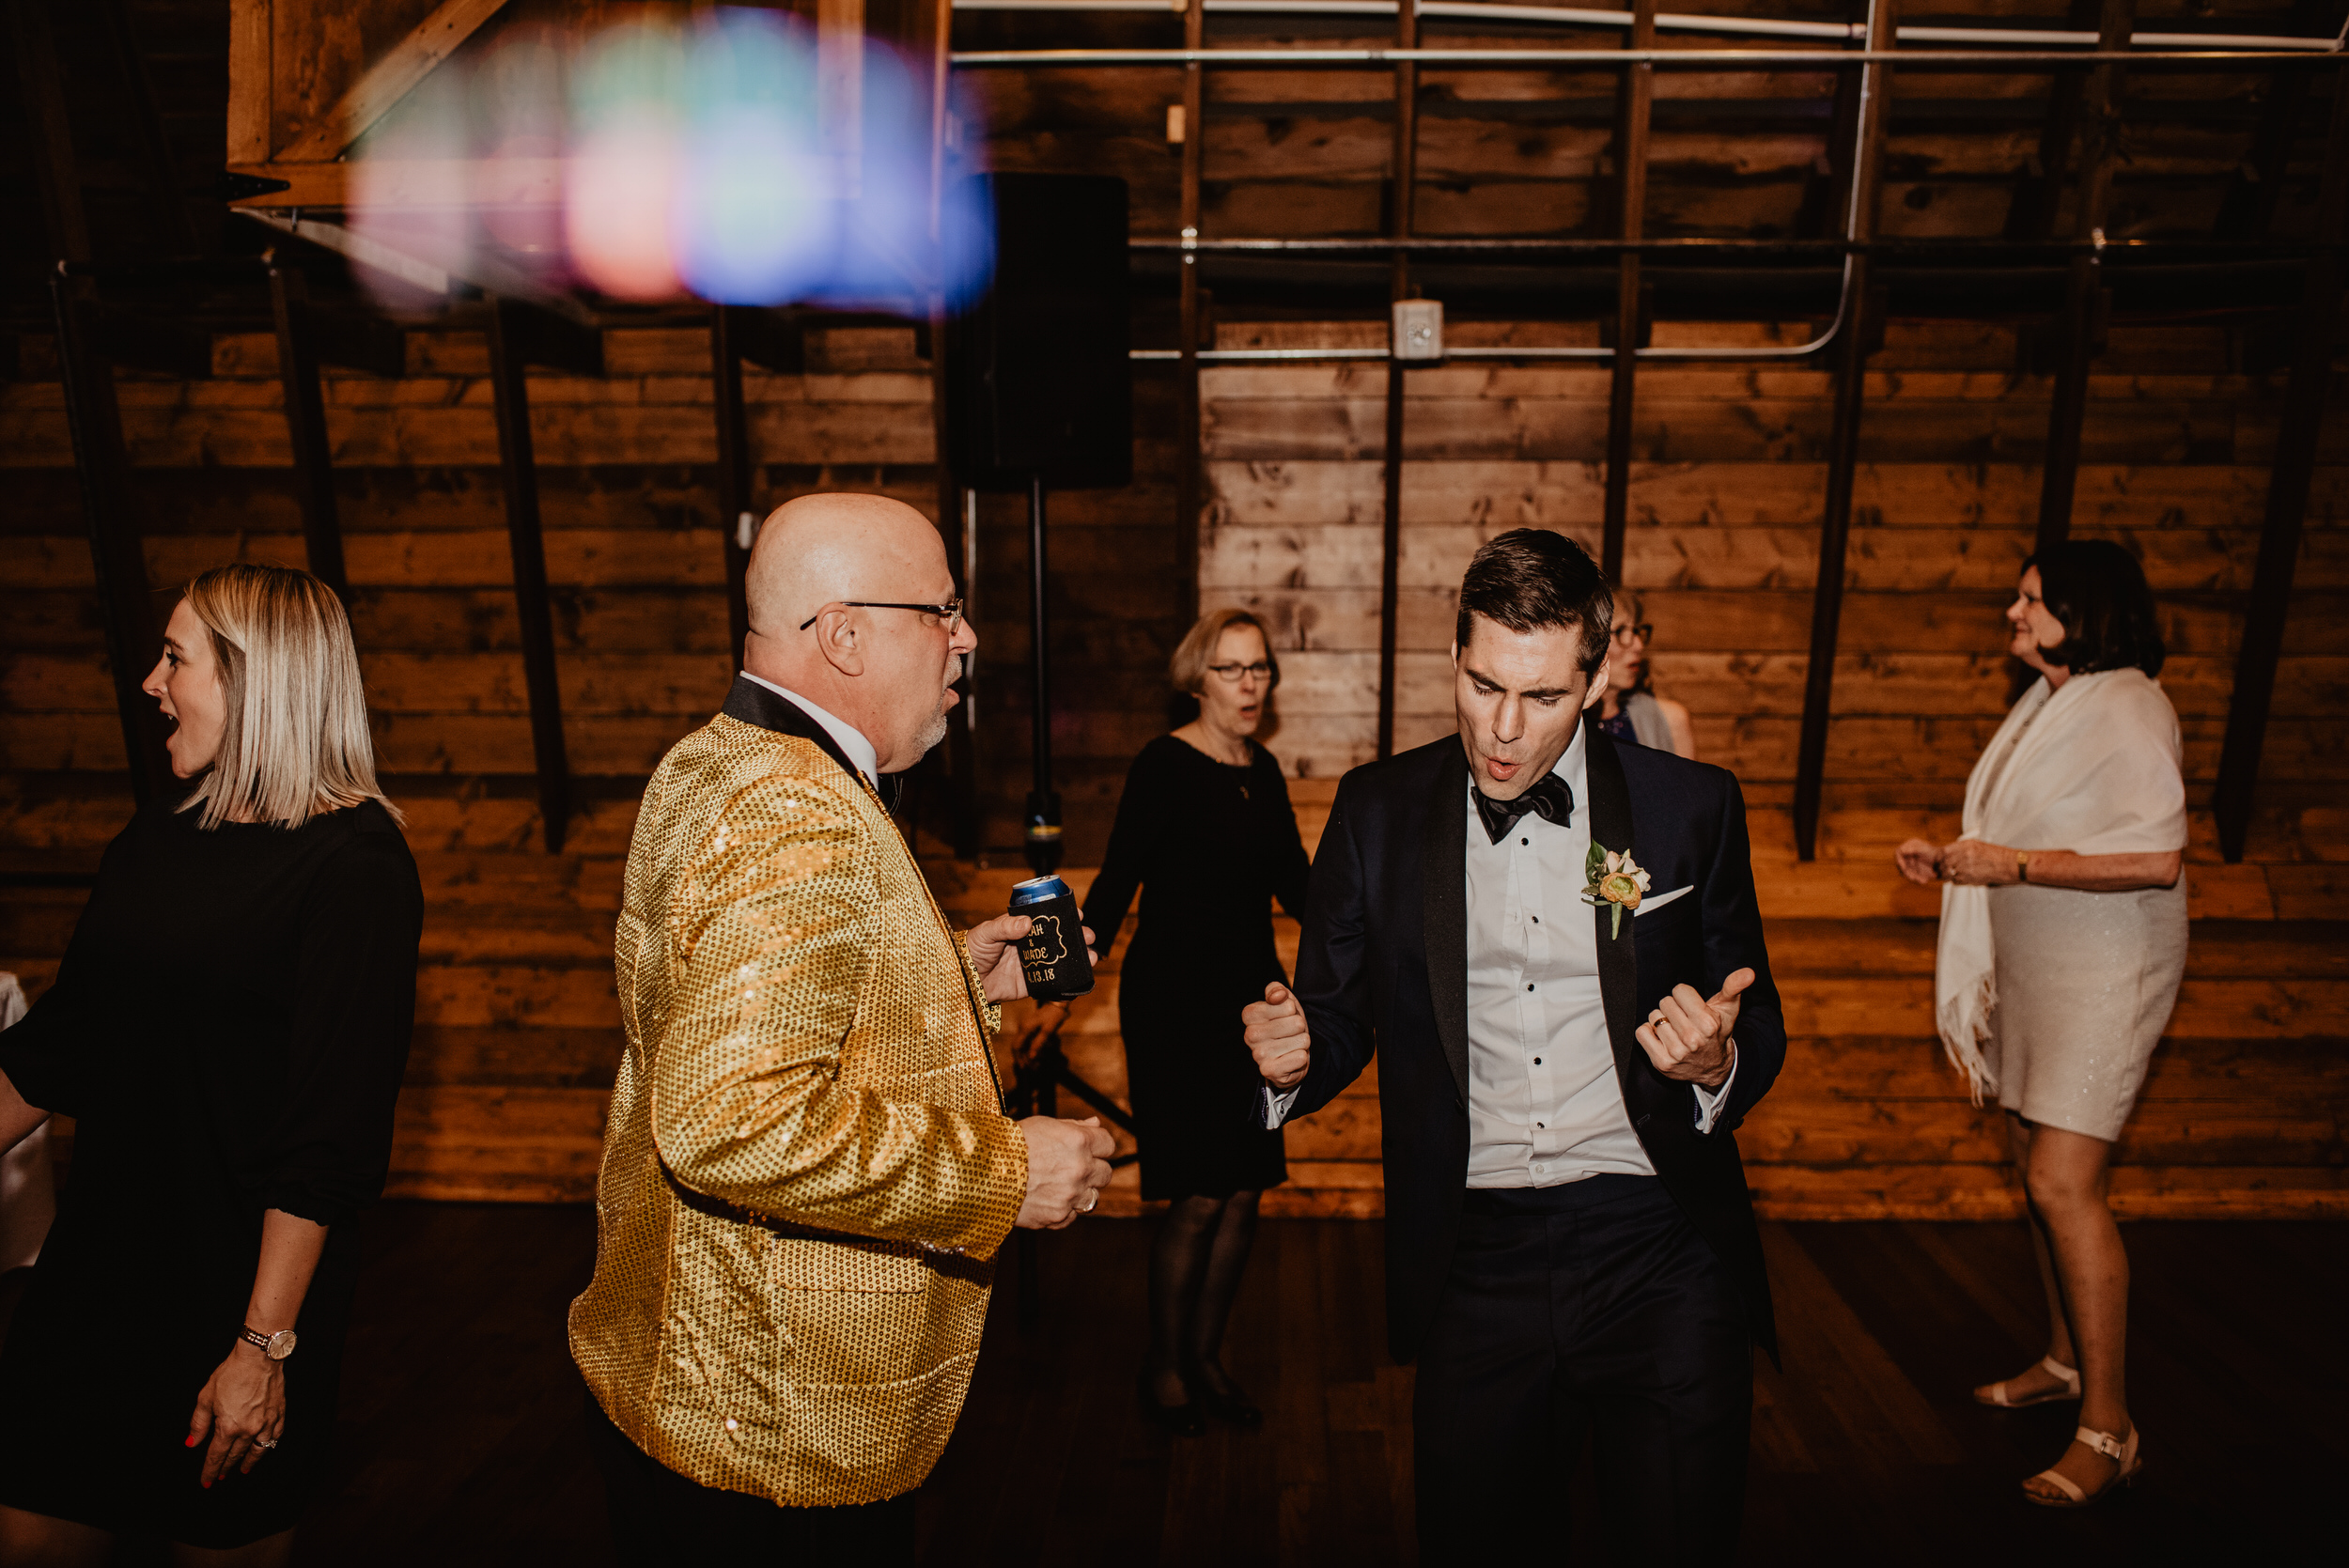 The Barn at the Ackerhurst Dairy Farm Omaha Nebraska Wedding Kaylie Sirek Photography135.jpg